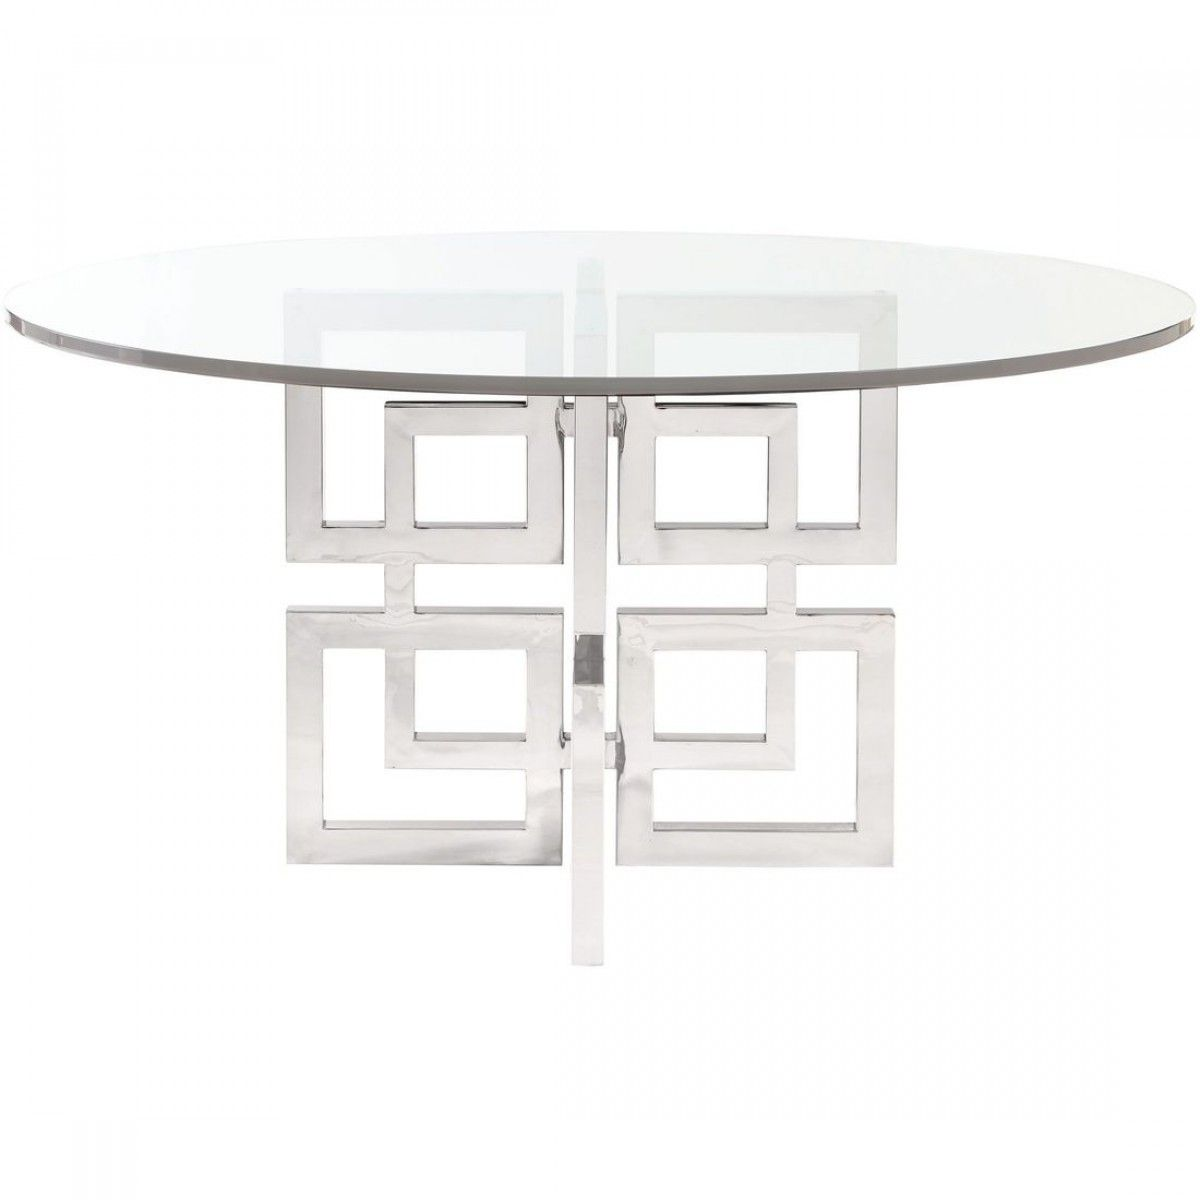 Bernhardt Soho Luxe Round Glass Top Dining Table Stainless Steel Dining Table Glass Round Dining Table Steel Dining Table